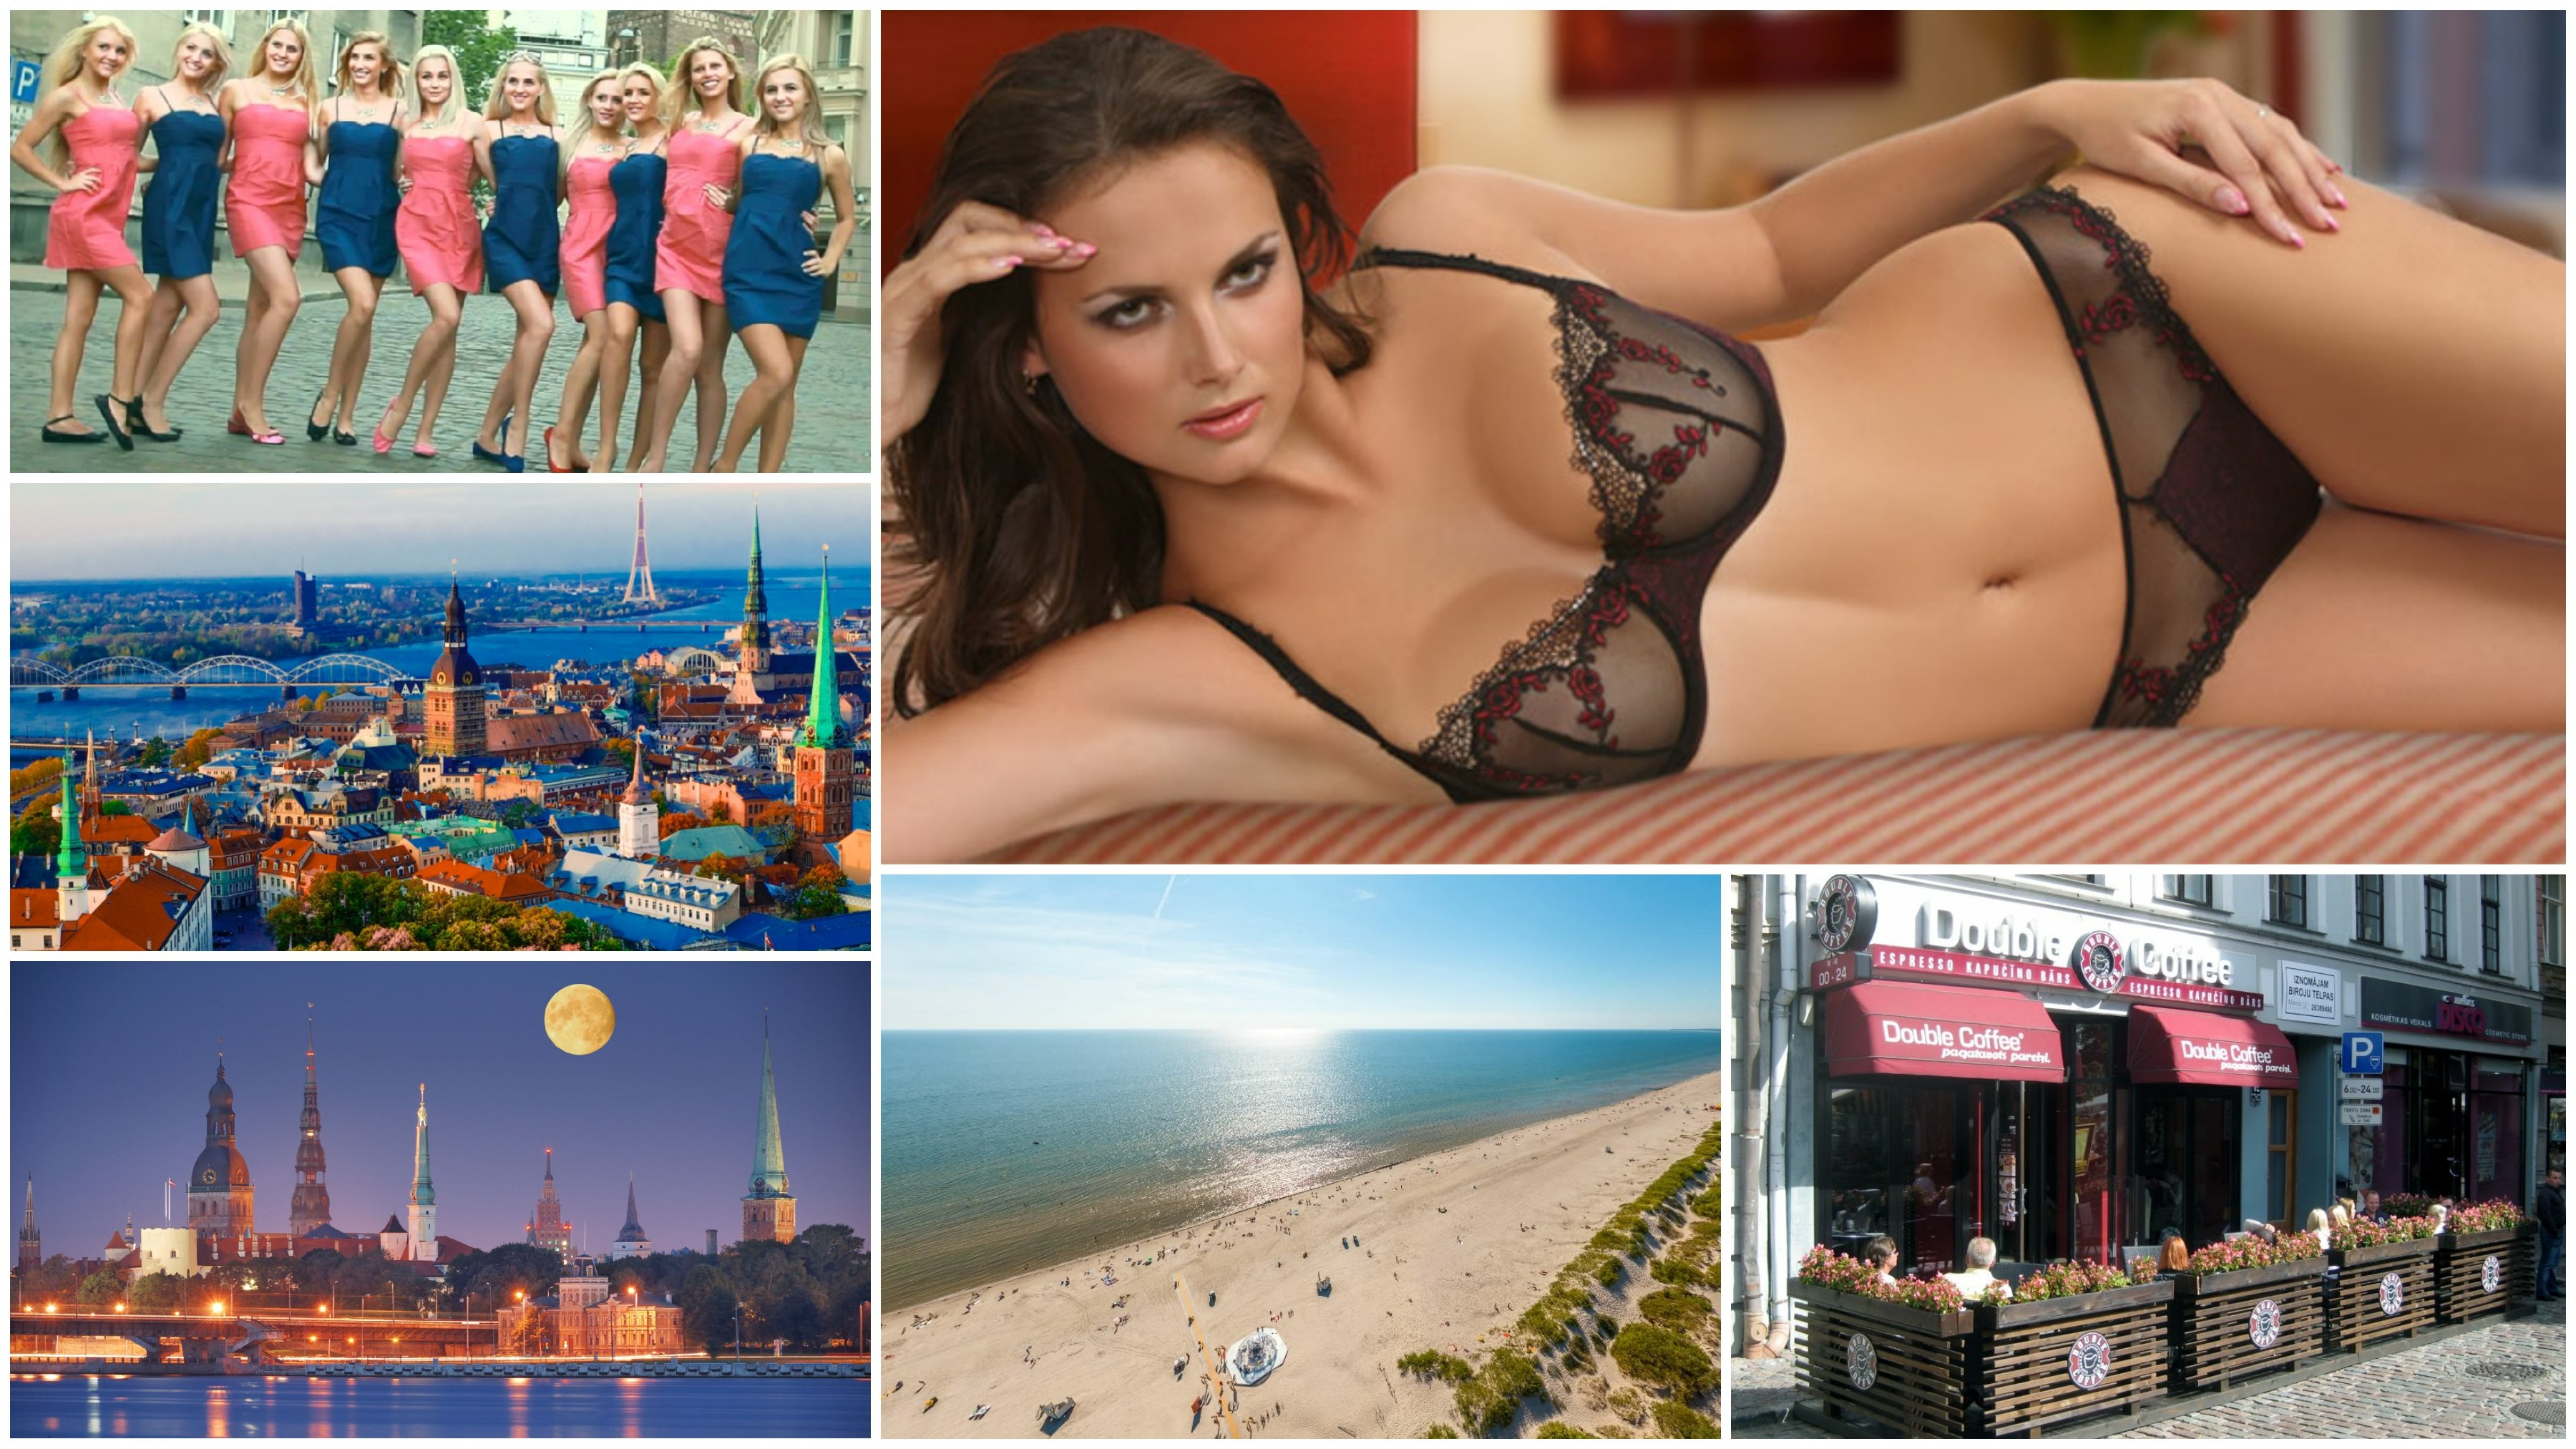 Latvian dating - Dating site satellite seriously